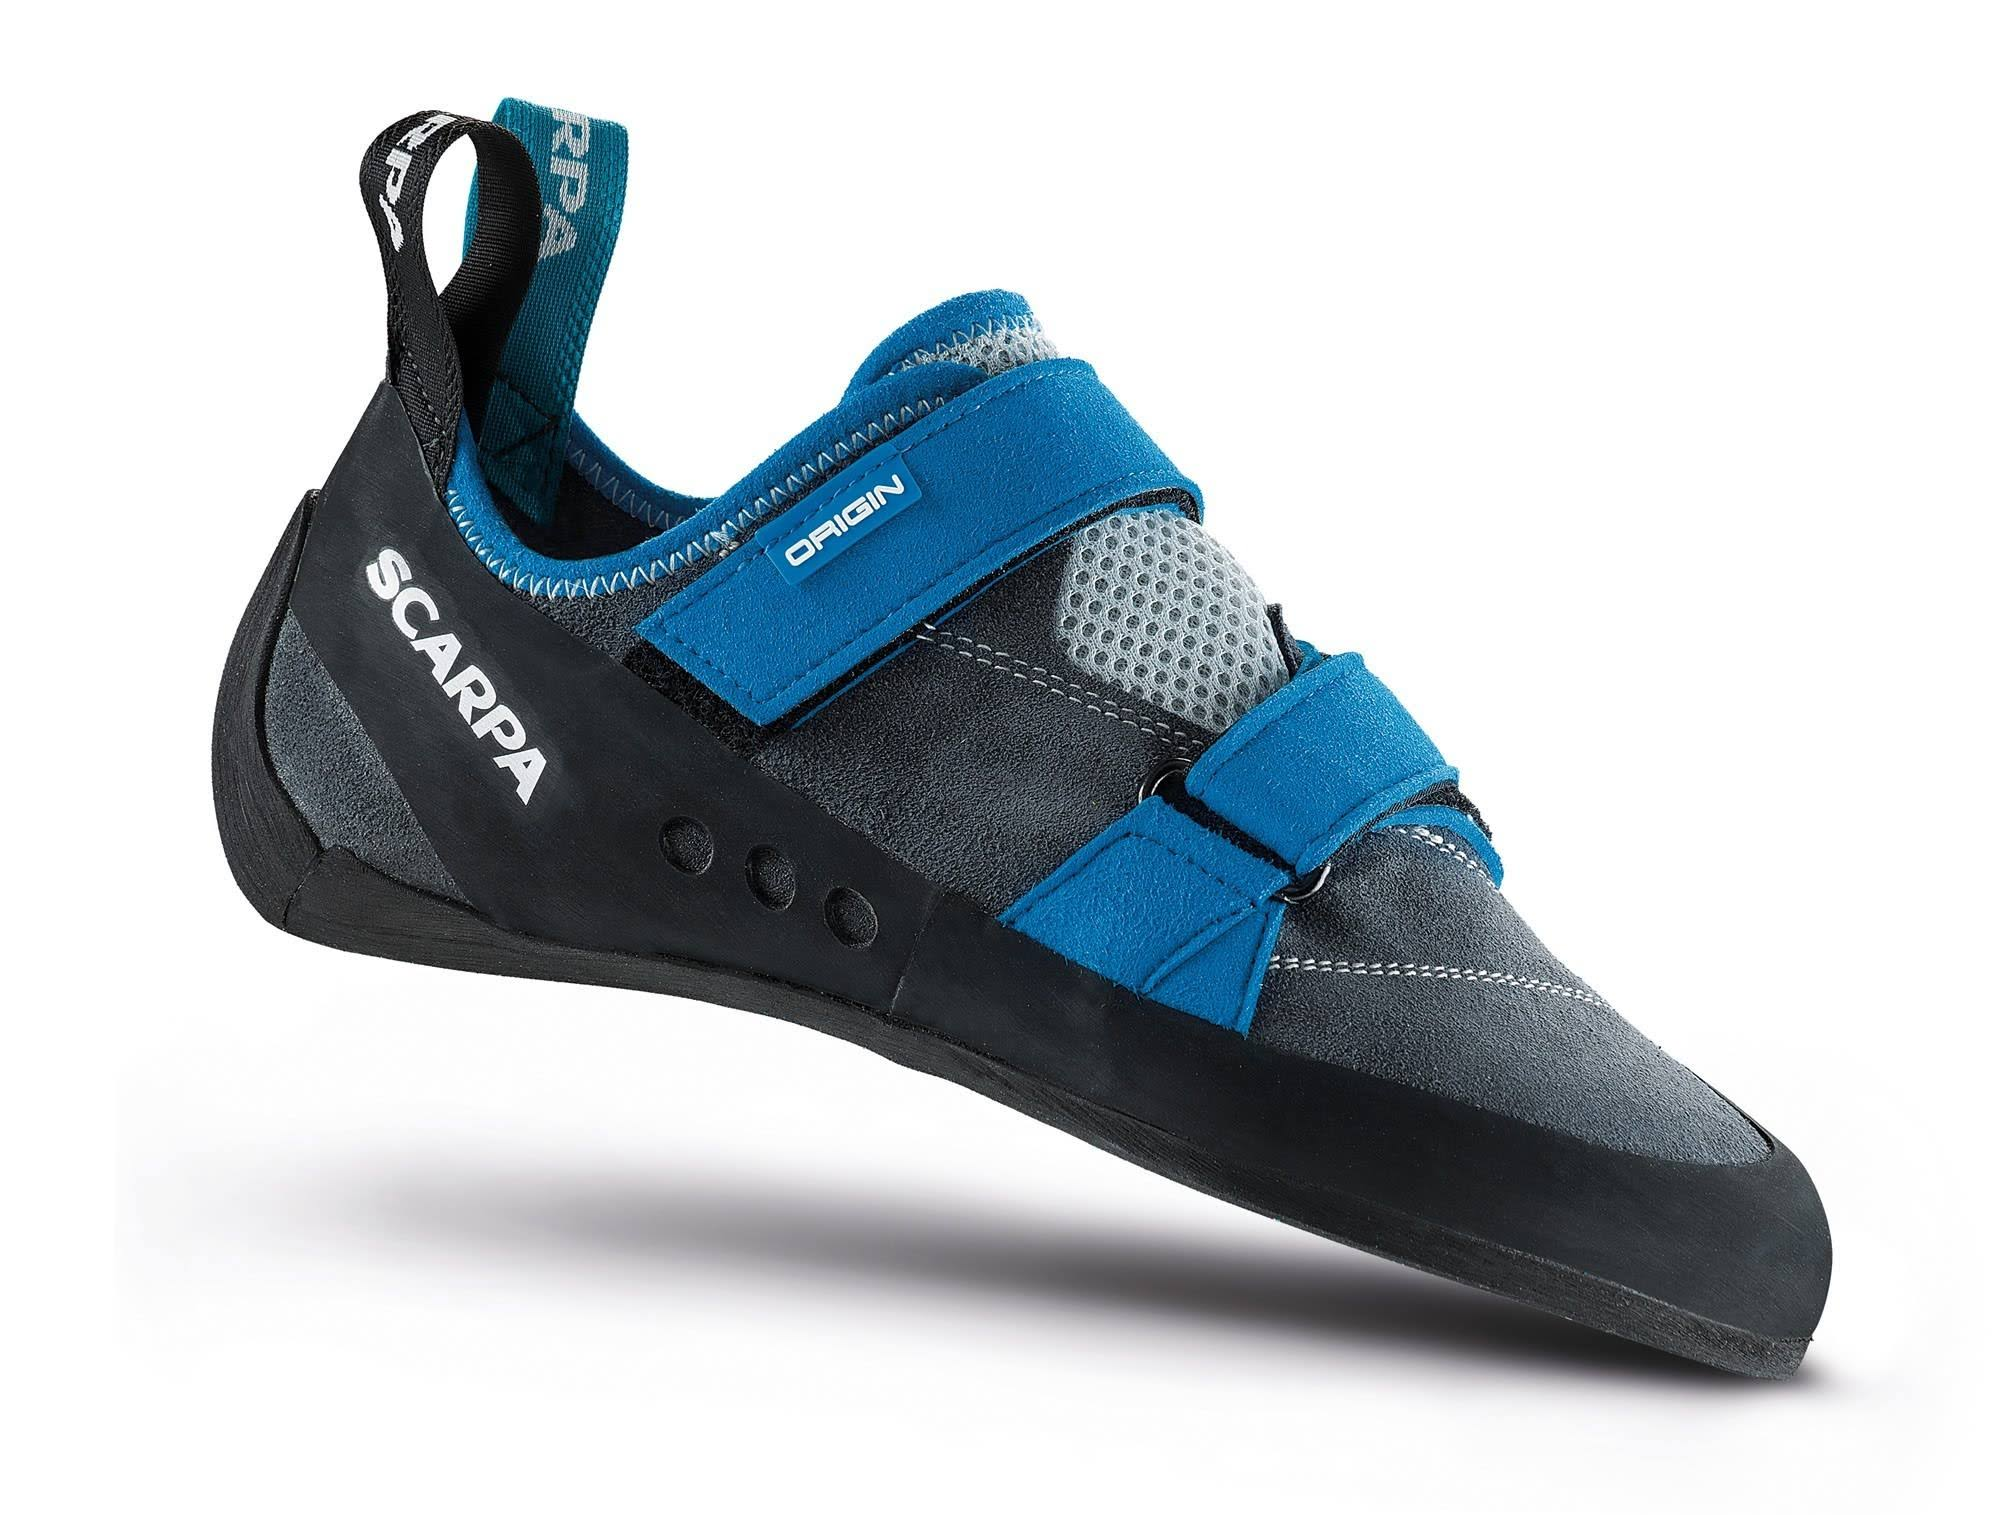 45 Origin Scarpa Shoes Gray Iron Climbing f1zxqzX